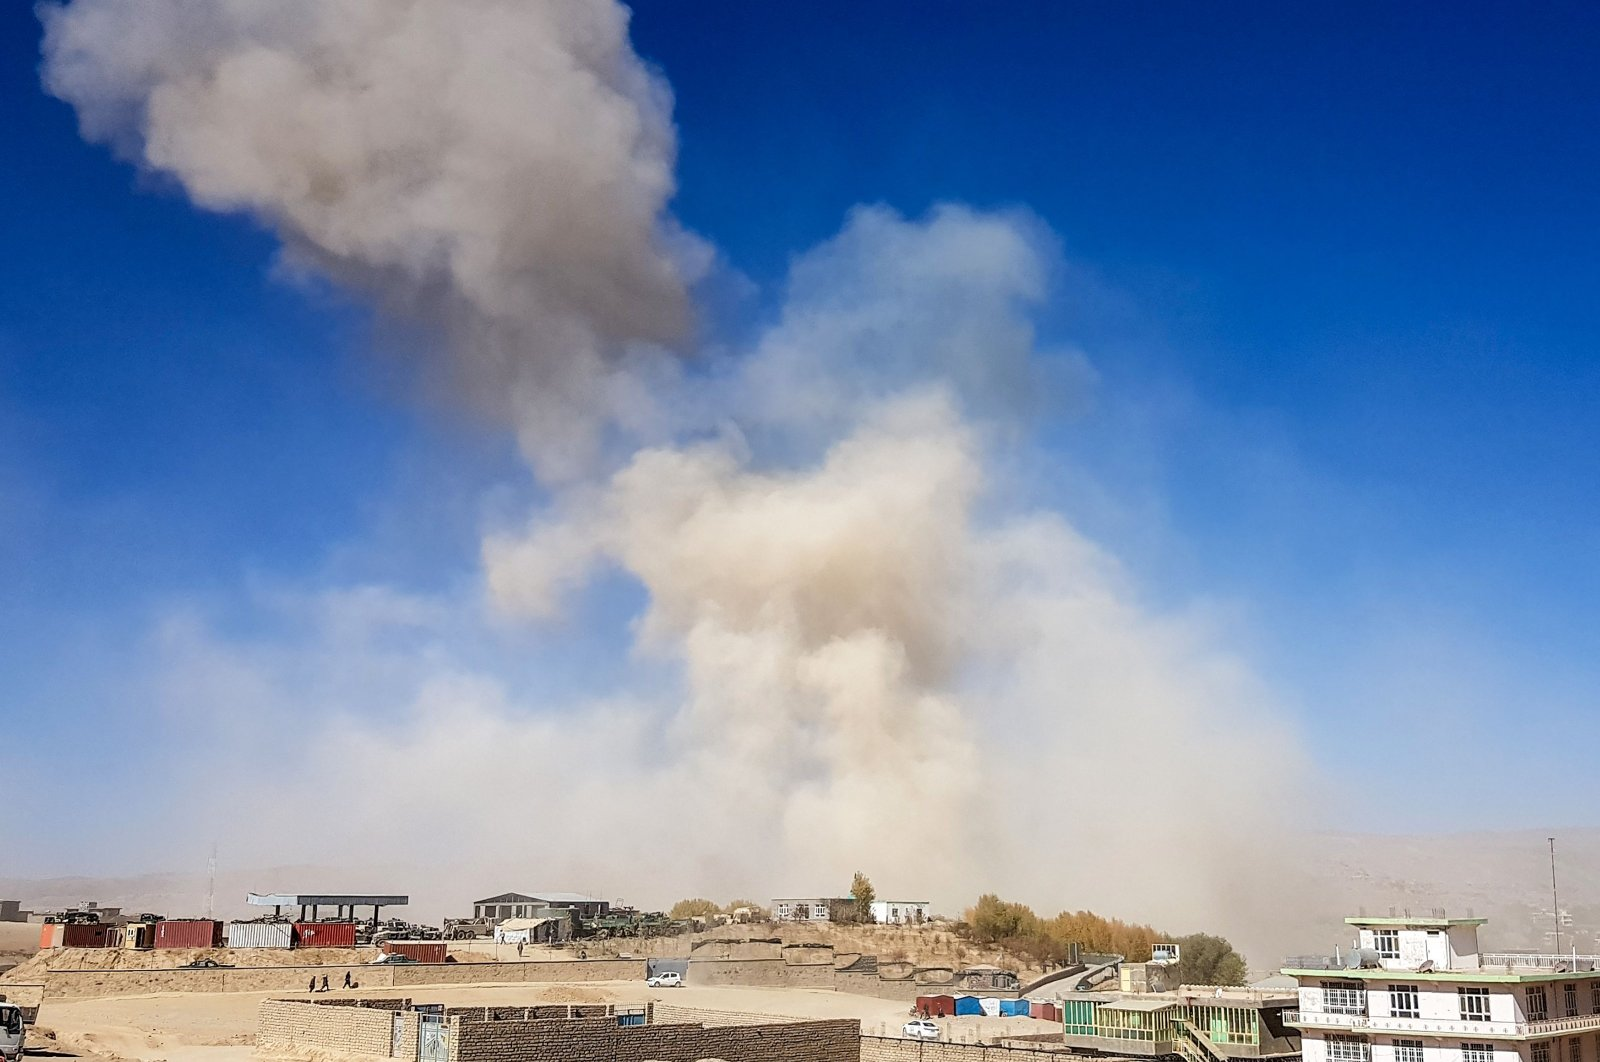 Smoke rises from the site of a car bomb attack that targeted Afghan police headquarters in Feroz Kho, the capital of Ghor Province on Oct. 18, 2020. (AFP Photo)